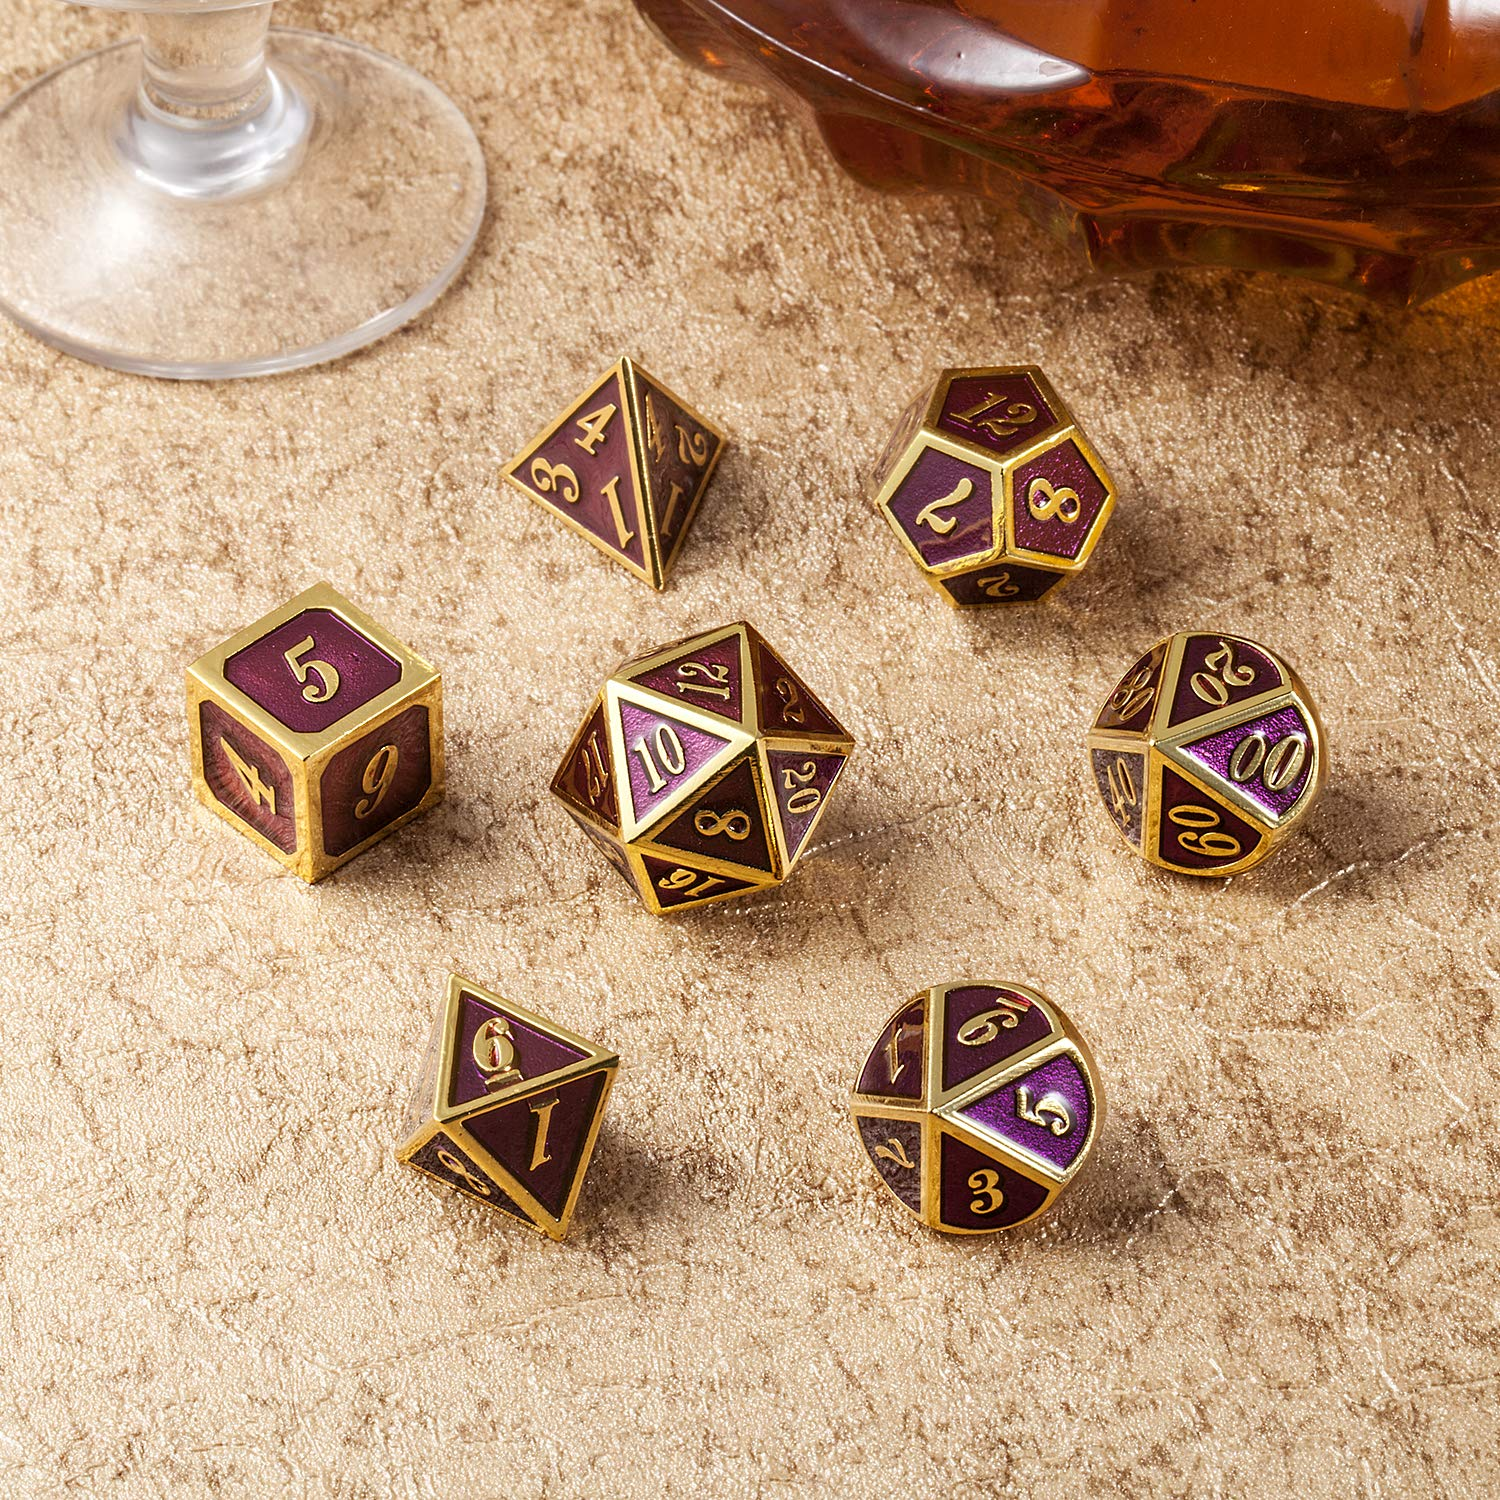 Table Game Metal Dice Set, 7PCS D&D Metal Die with Metal Gift Box for Tabletop Games Dungeons and Dragons Dice (Dark Purple and Gold Number) by DNDND (Image #6)